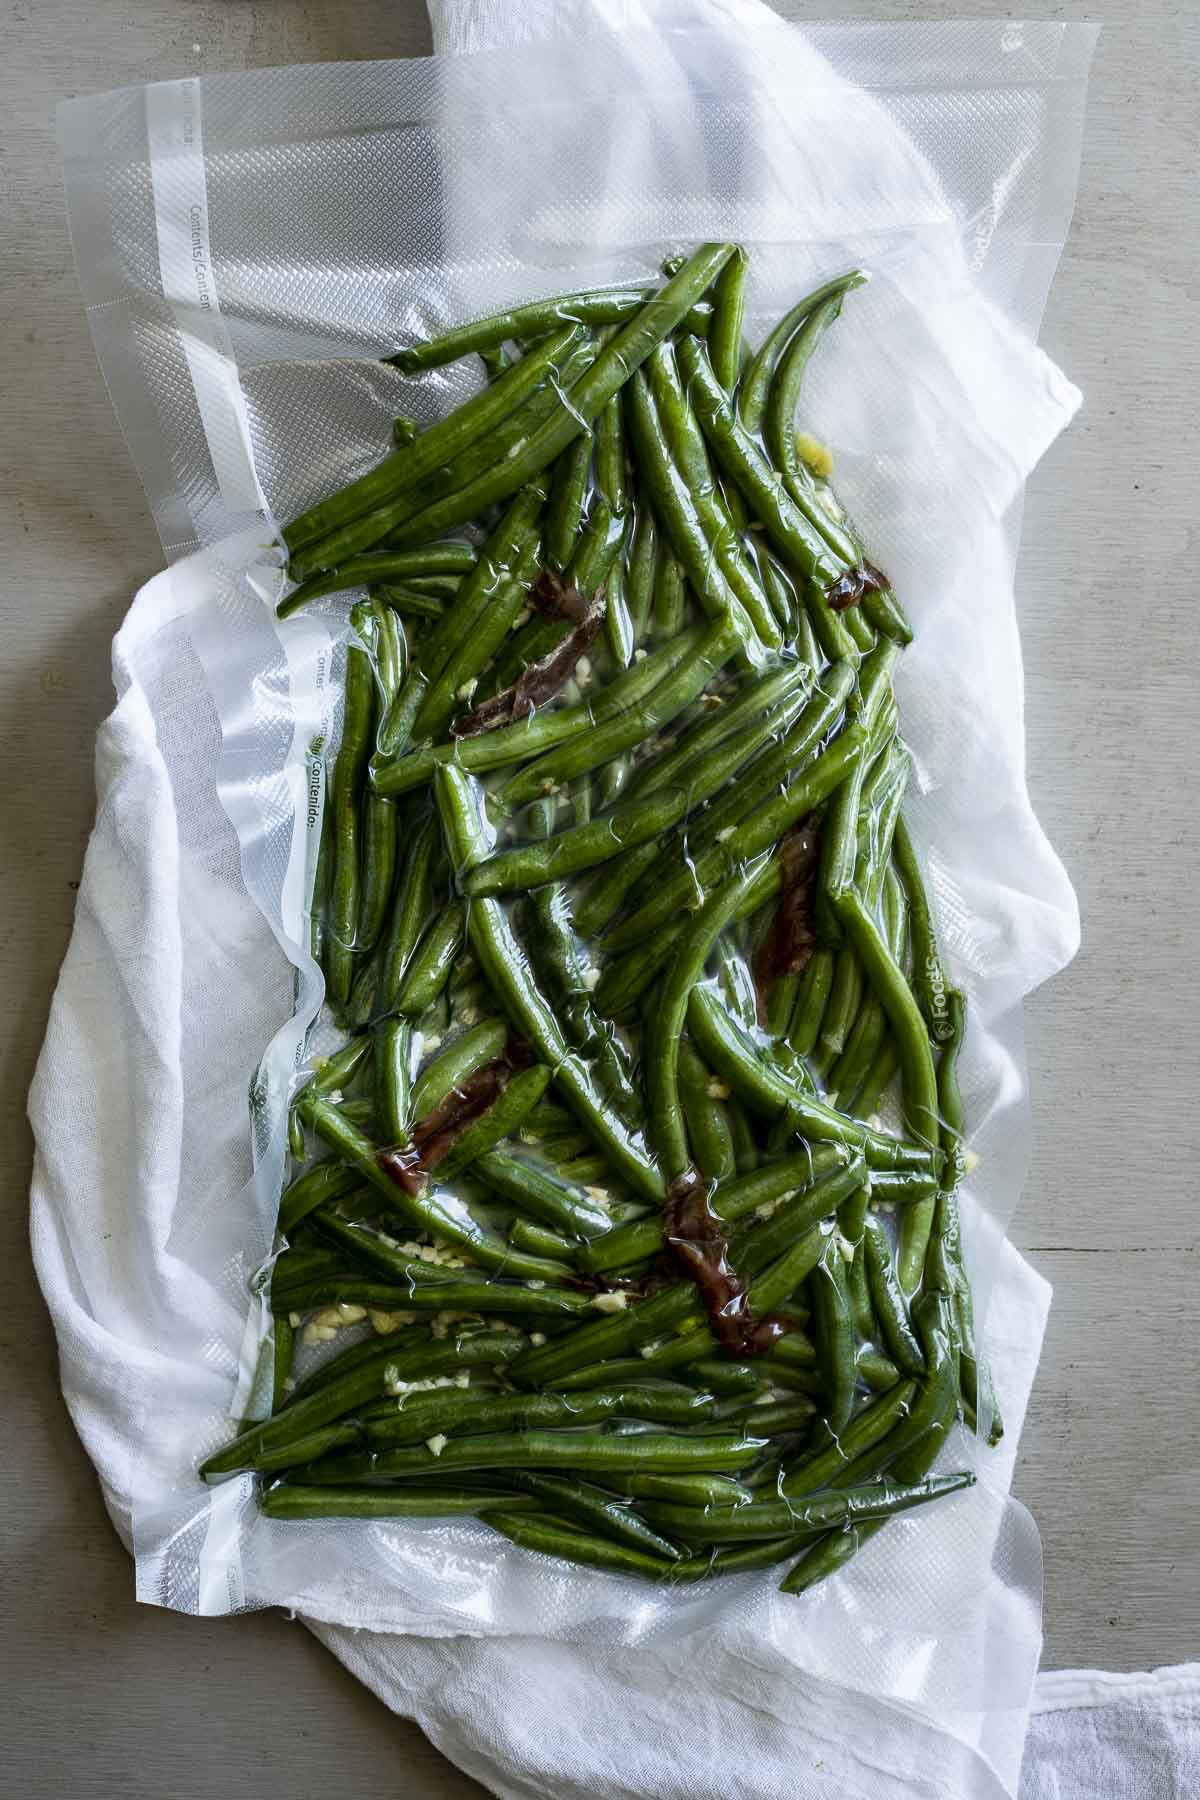 Green beans, garlic, anchovies and oil sealed in a vacuum sealable bag.